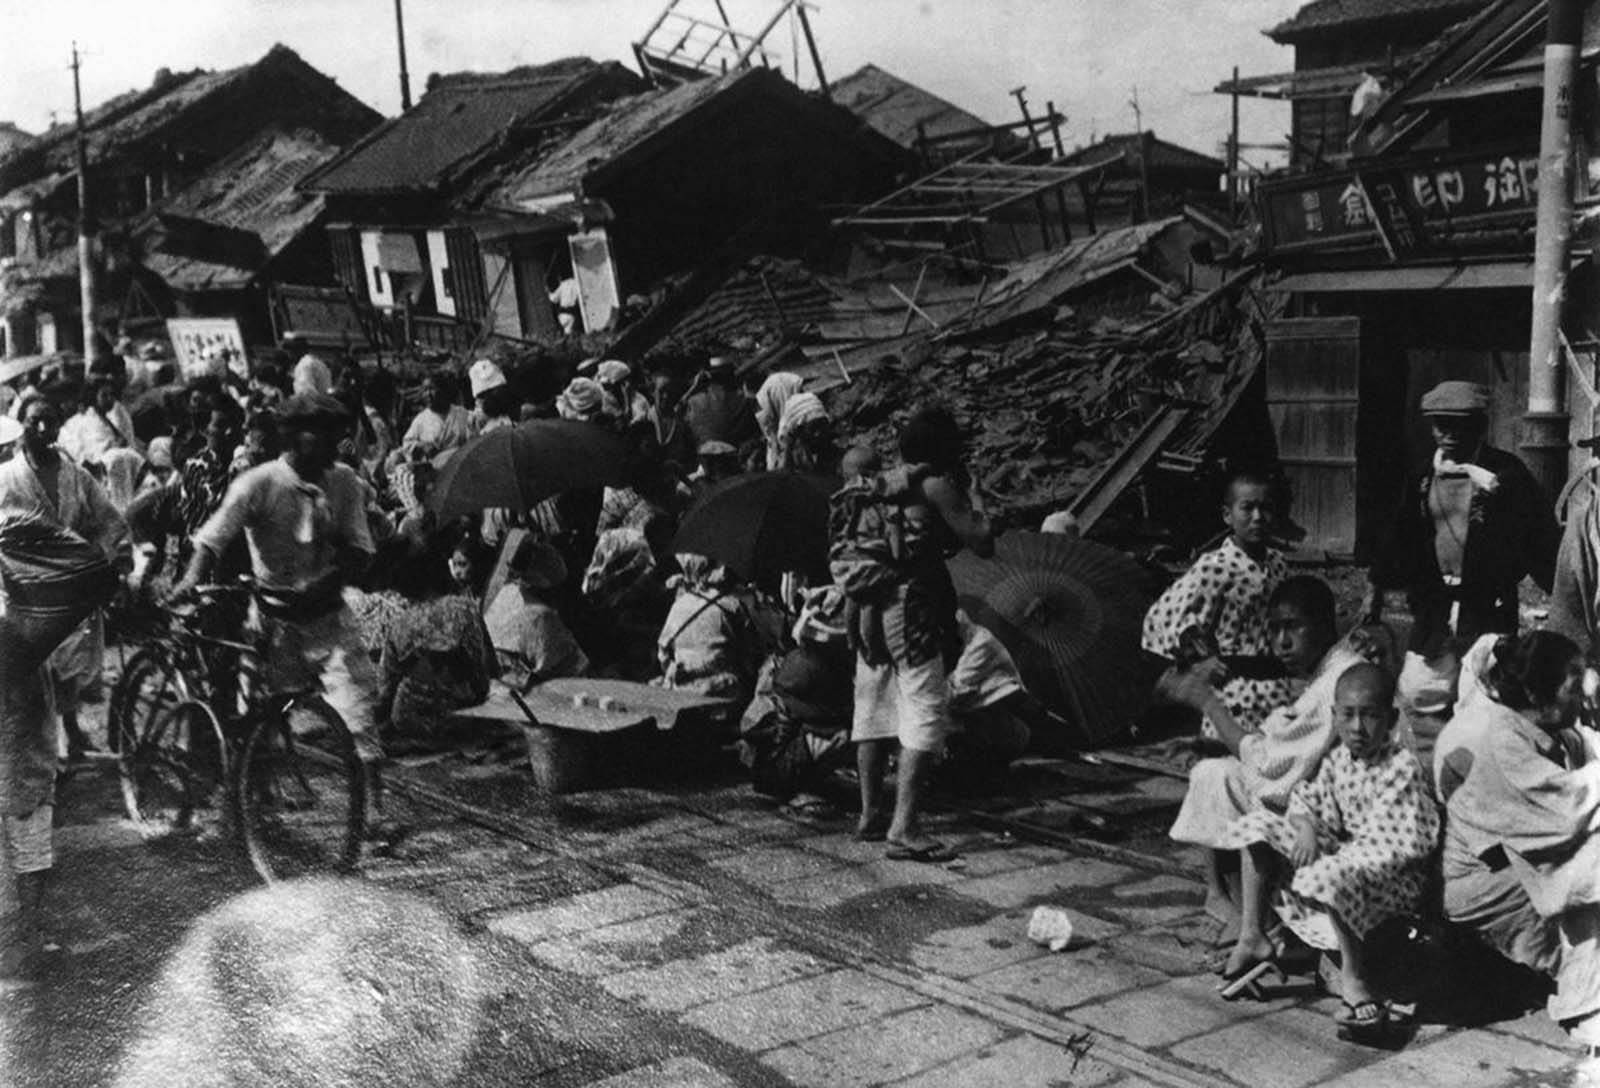 Many People sit on street car railway in front of their crushed houses in Japan 1923 after an earthquake. Fortunately, this area did not suffer from fire.